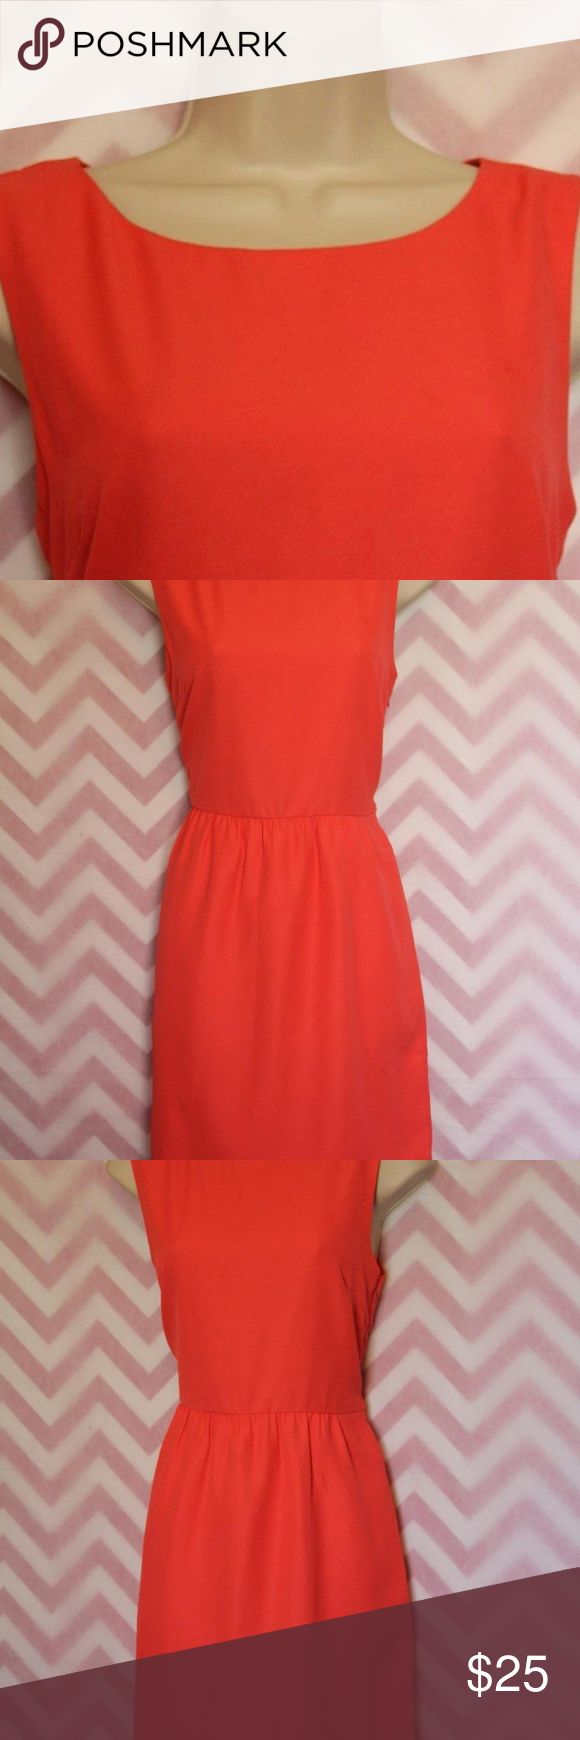 J. Crew Coral Dress Size 6 Classic Summer J. Crew Coral Dress. Pockets. Side Zip. Two light snags/runs in fabric. Nice dress! Size 6. 100% Polyester. Lining: 100% Acetate. Made in Sri Lanka.  Measured across lying flat/relaxed. These are only approximate. Pls refer to tag size. Bust16.5/Waist 14.5/Length 34.25  All items are clothes pinned in the back to fit my small mannequin and show fit/shape. What you see is what you will get so please view all pics closely! J. Crew Dresses